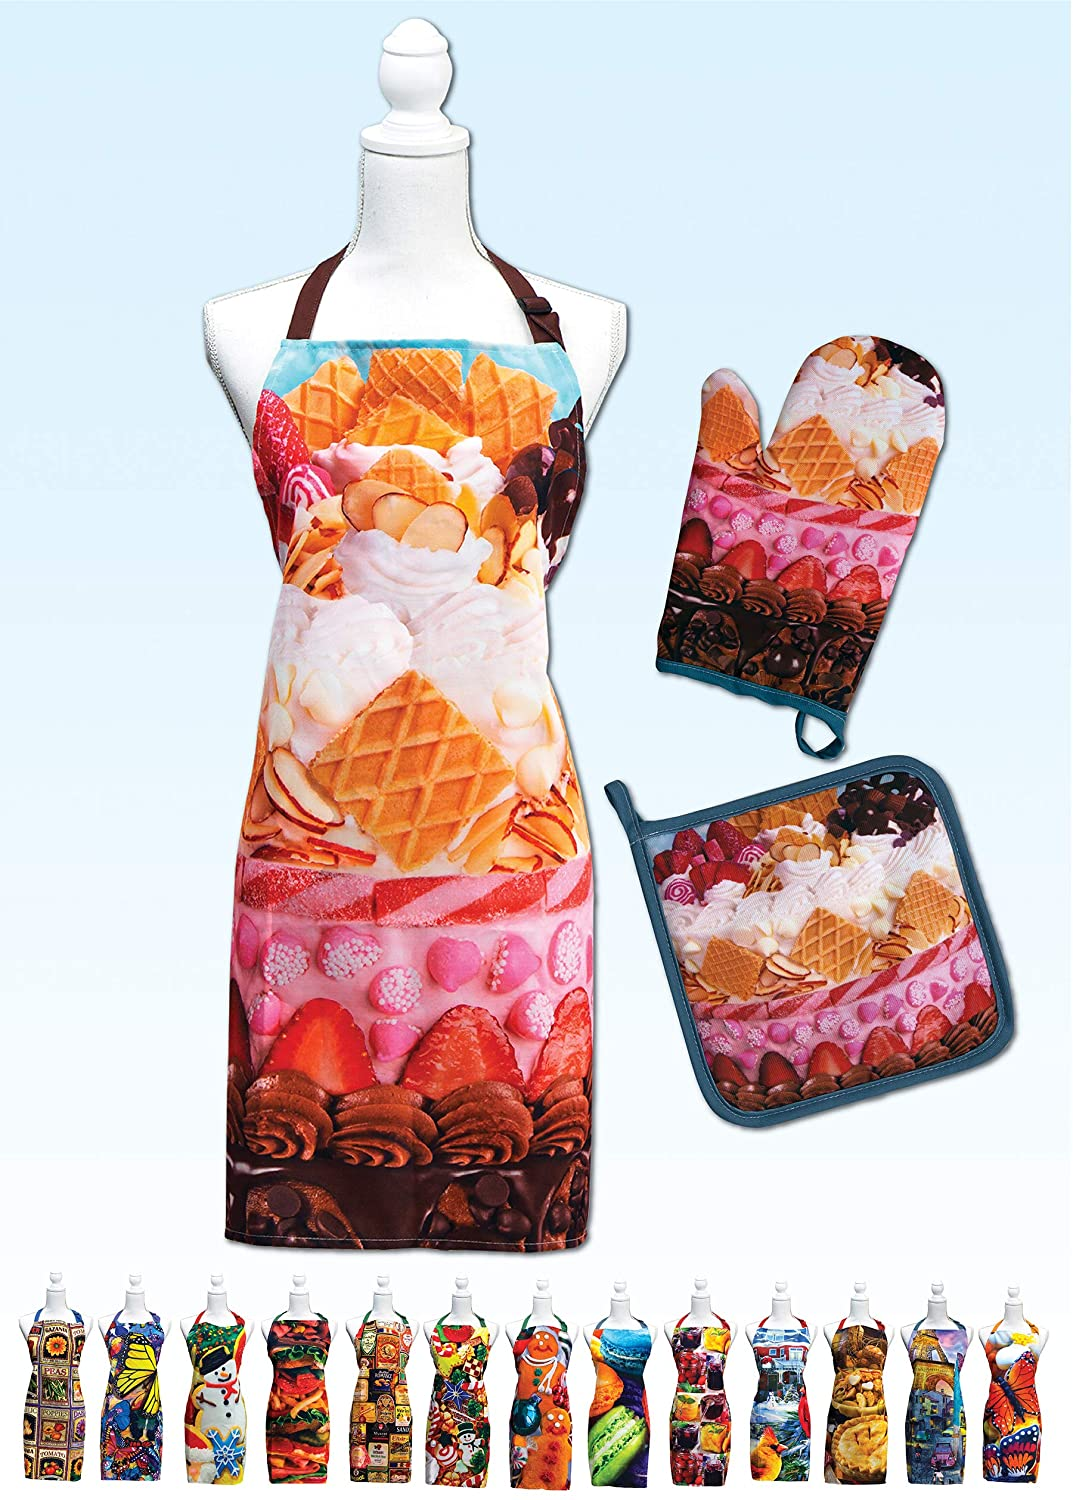 Springbok Icing on The Cake Adjustable Kitchen Apron, Oven Mitt and Pot Holder Set